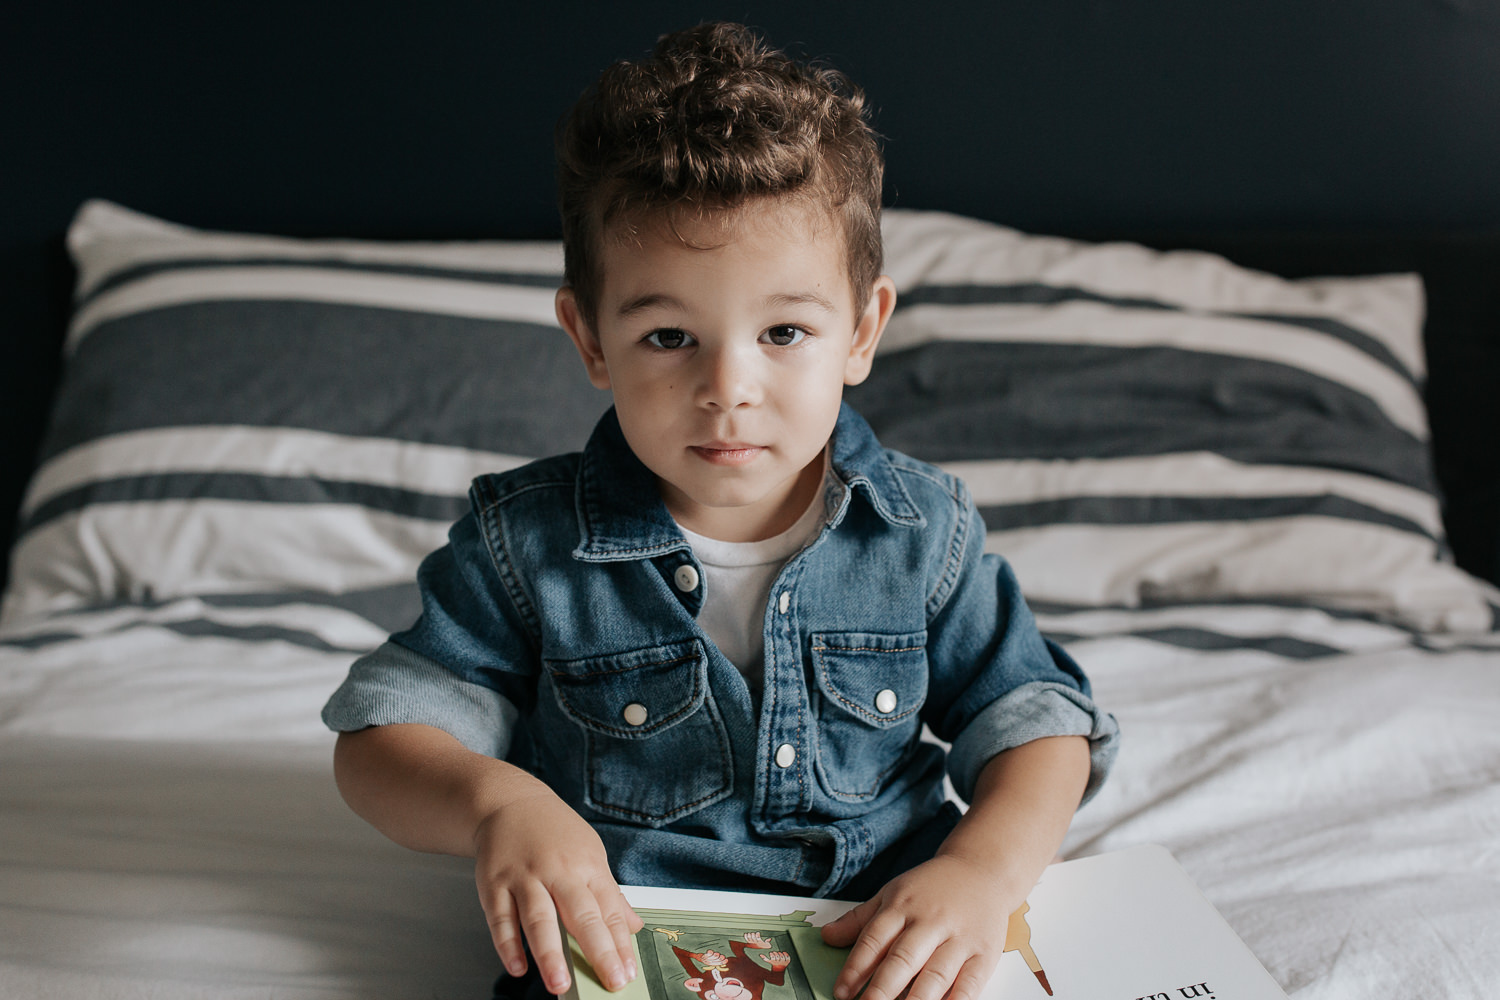 2 year old toddler boy with dark curly hair wearing chambray shirt sitting on his bed holding book and looking at camera - Newmarket Lifestyle Photos